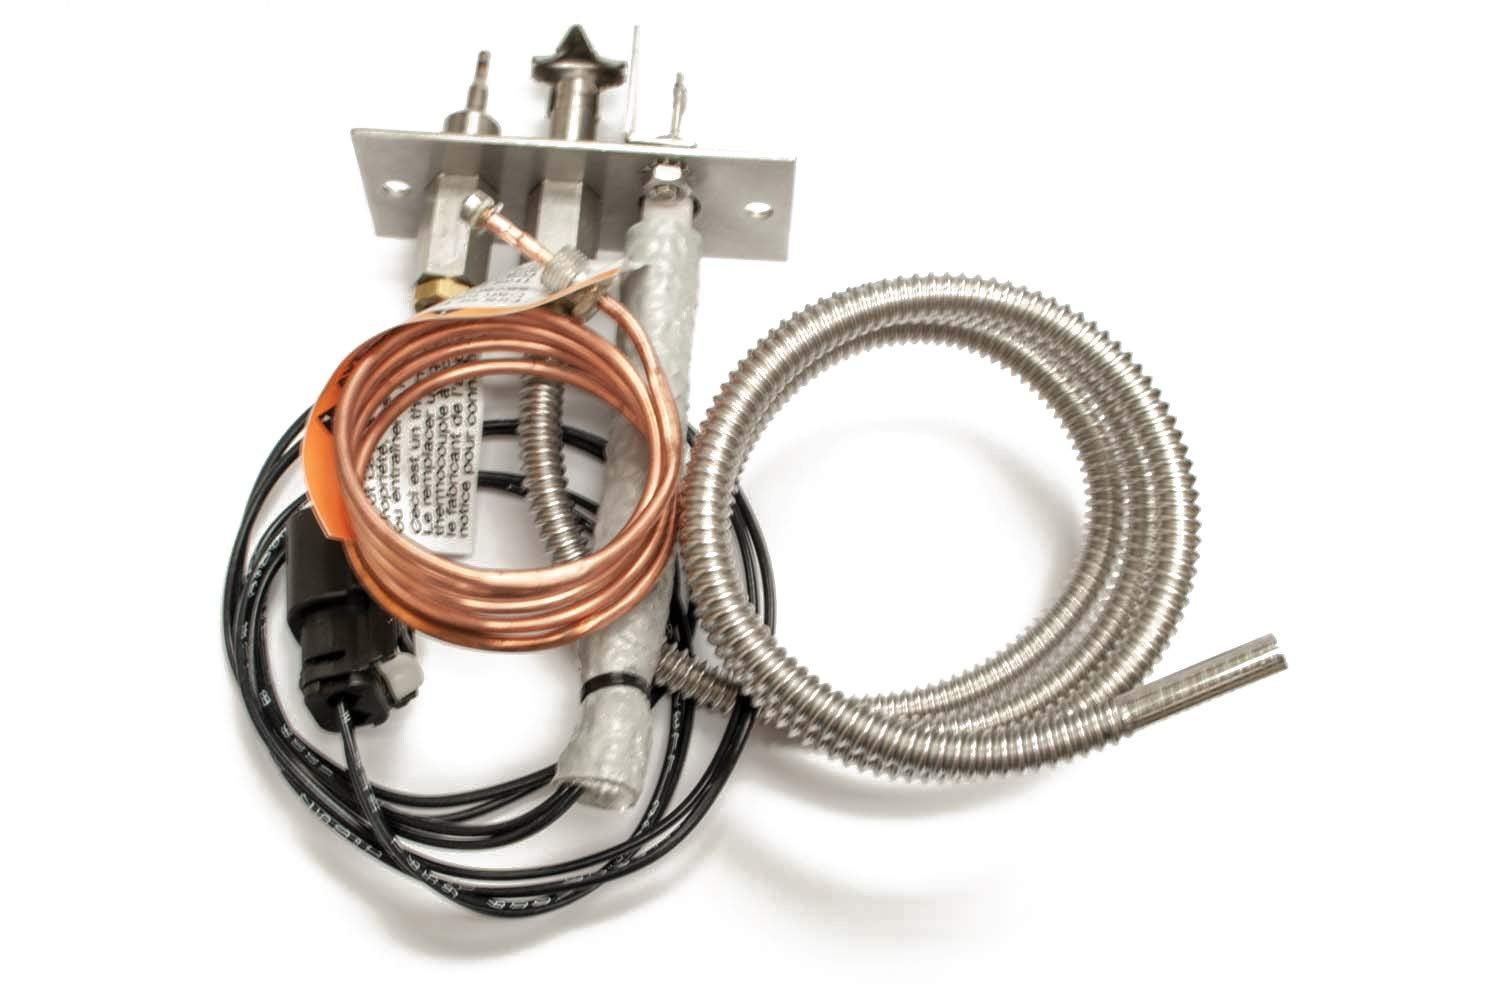 Hearth Products Controls Replacement Pilot Assembly (HWIP-36SS-250-400LP), 250K-400K BTU, 36-inch by Hearth Products Controls